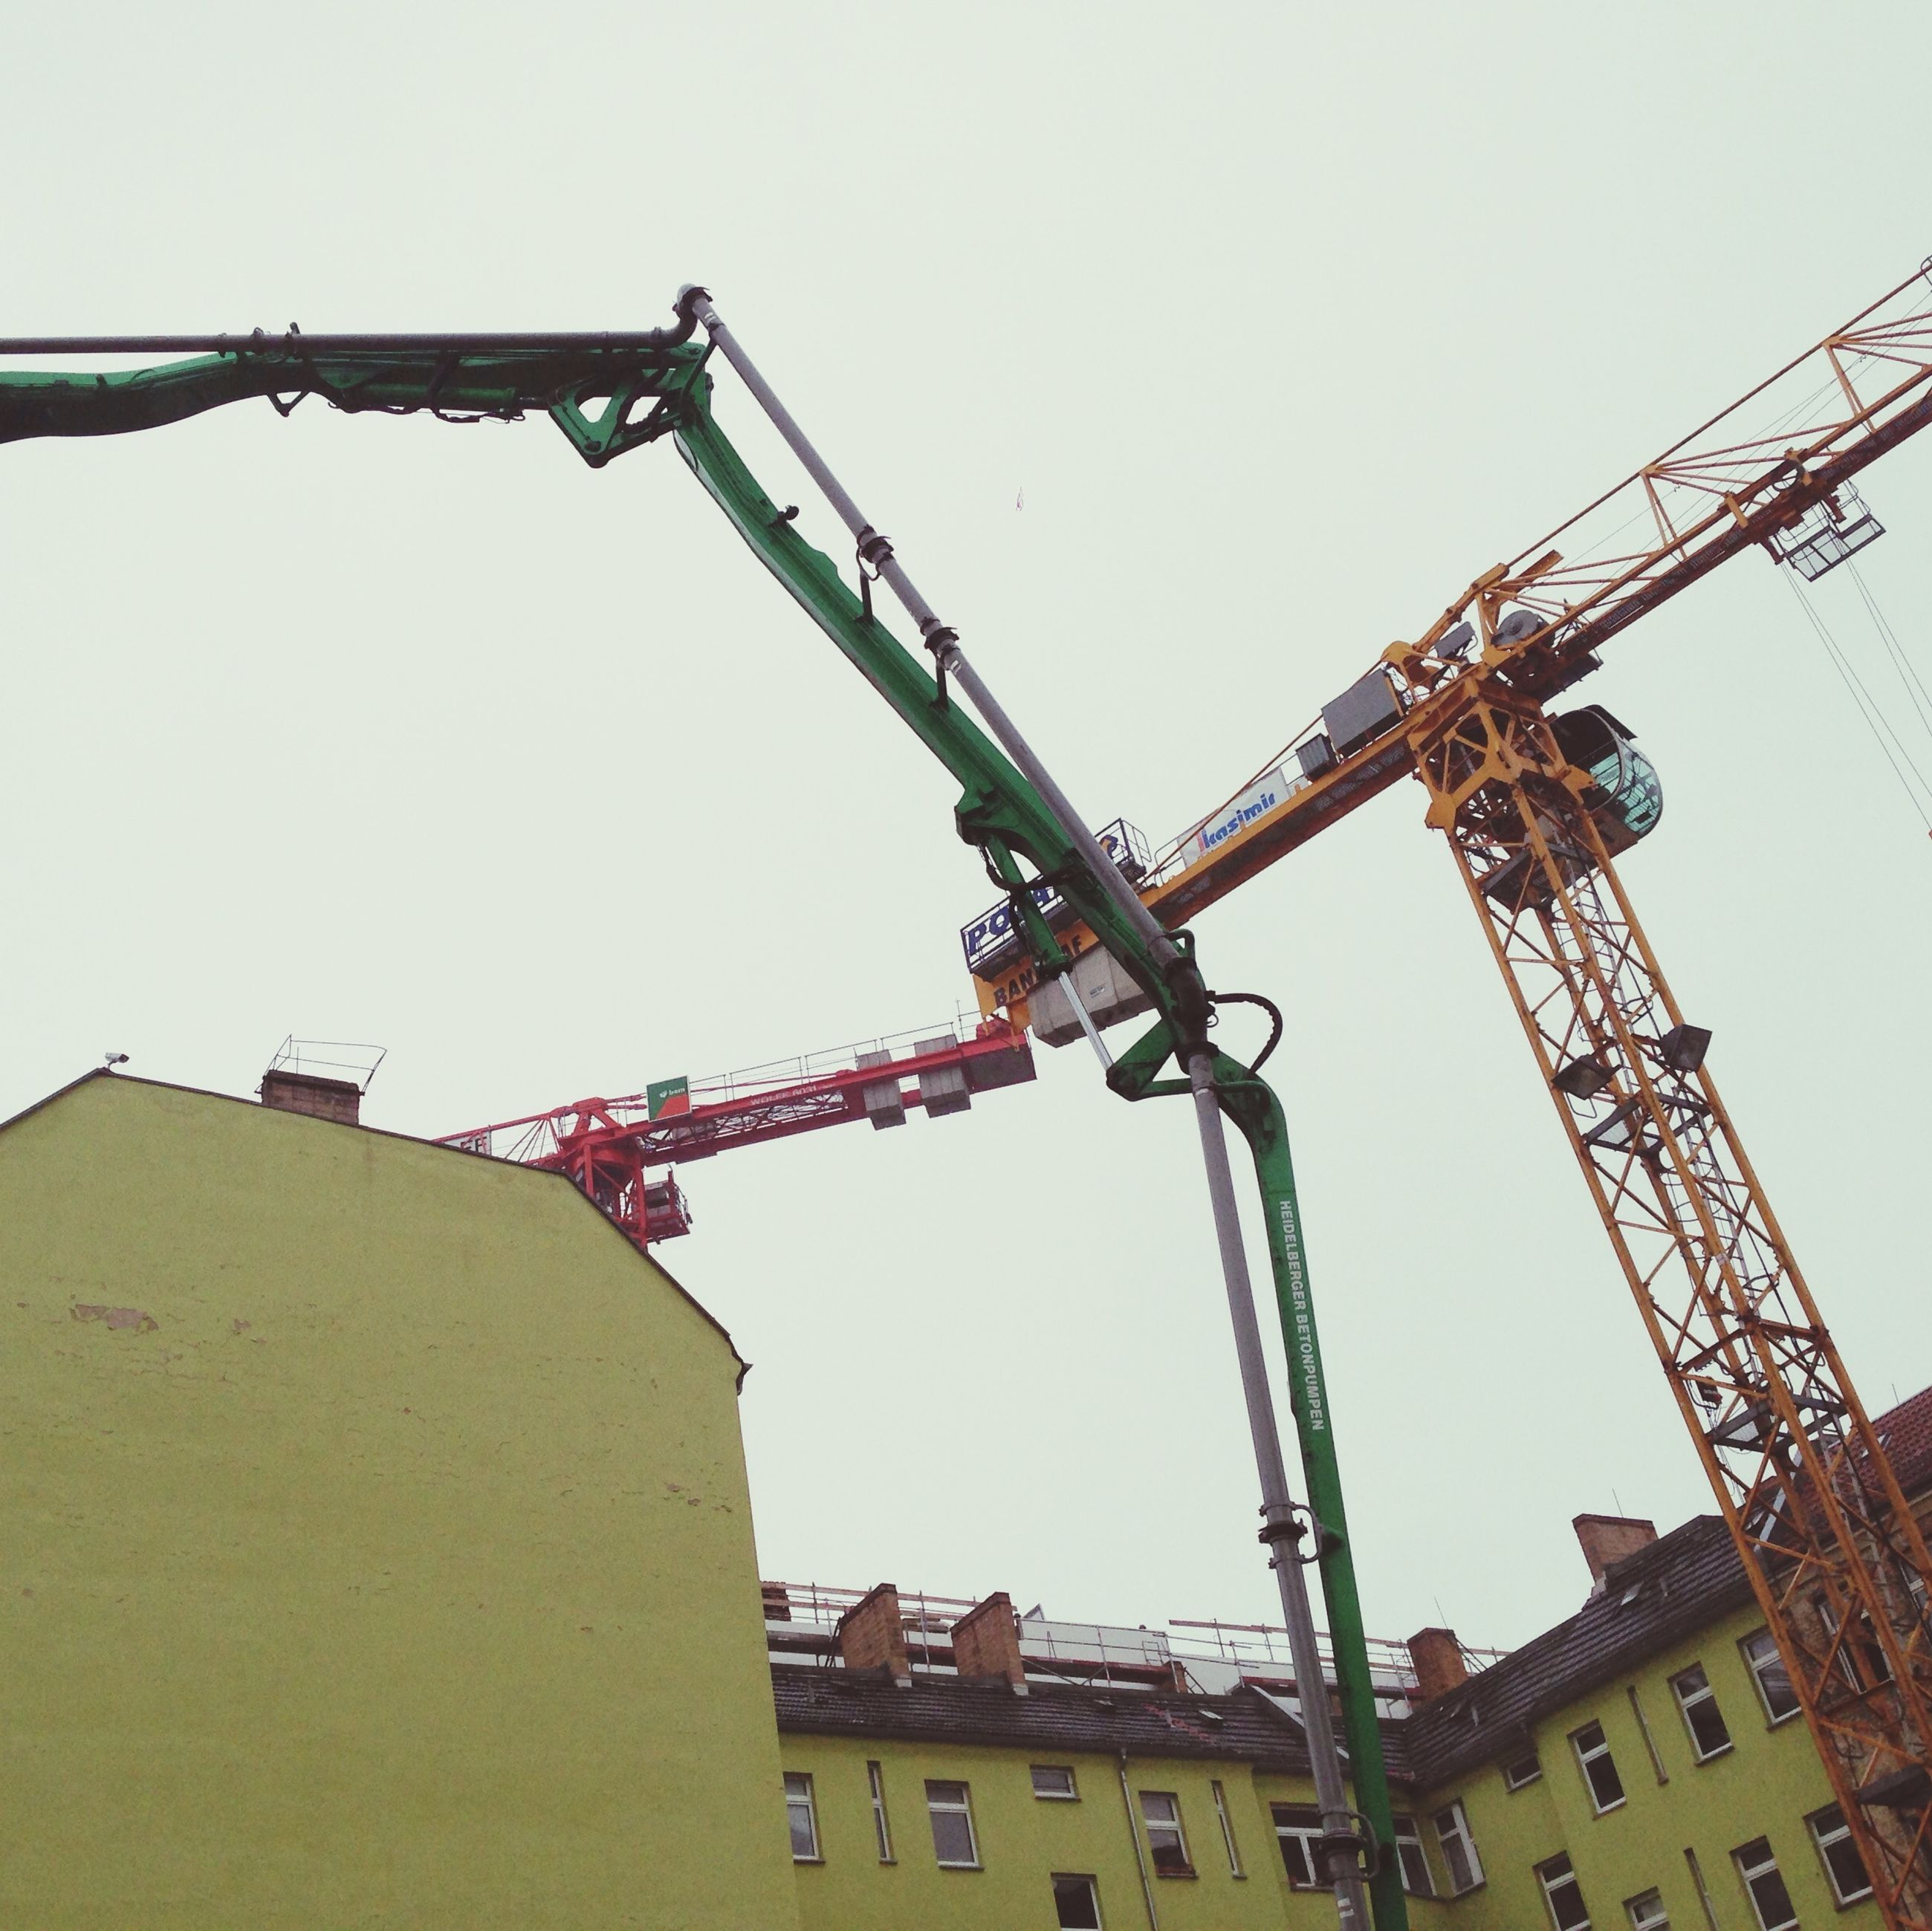 architecture, built structure, building exterior, low angle view, clear sky, construction site, crane - construction machinery, development, construction, residential building, copy space, crane, residential structure, building, industry, outdoors, no people, city, sky, incomplete